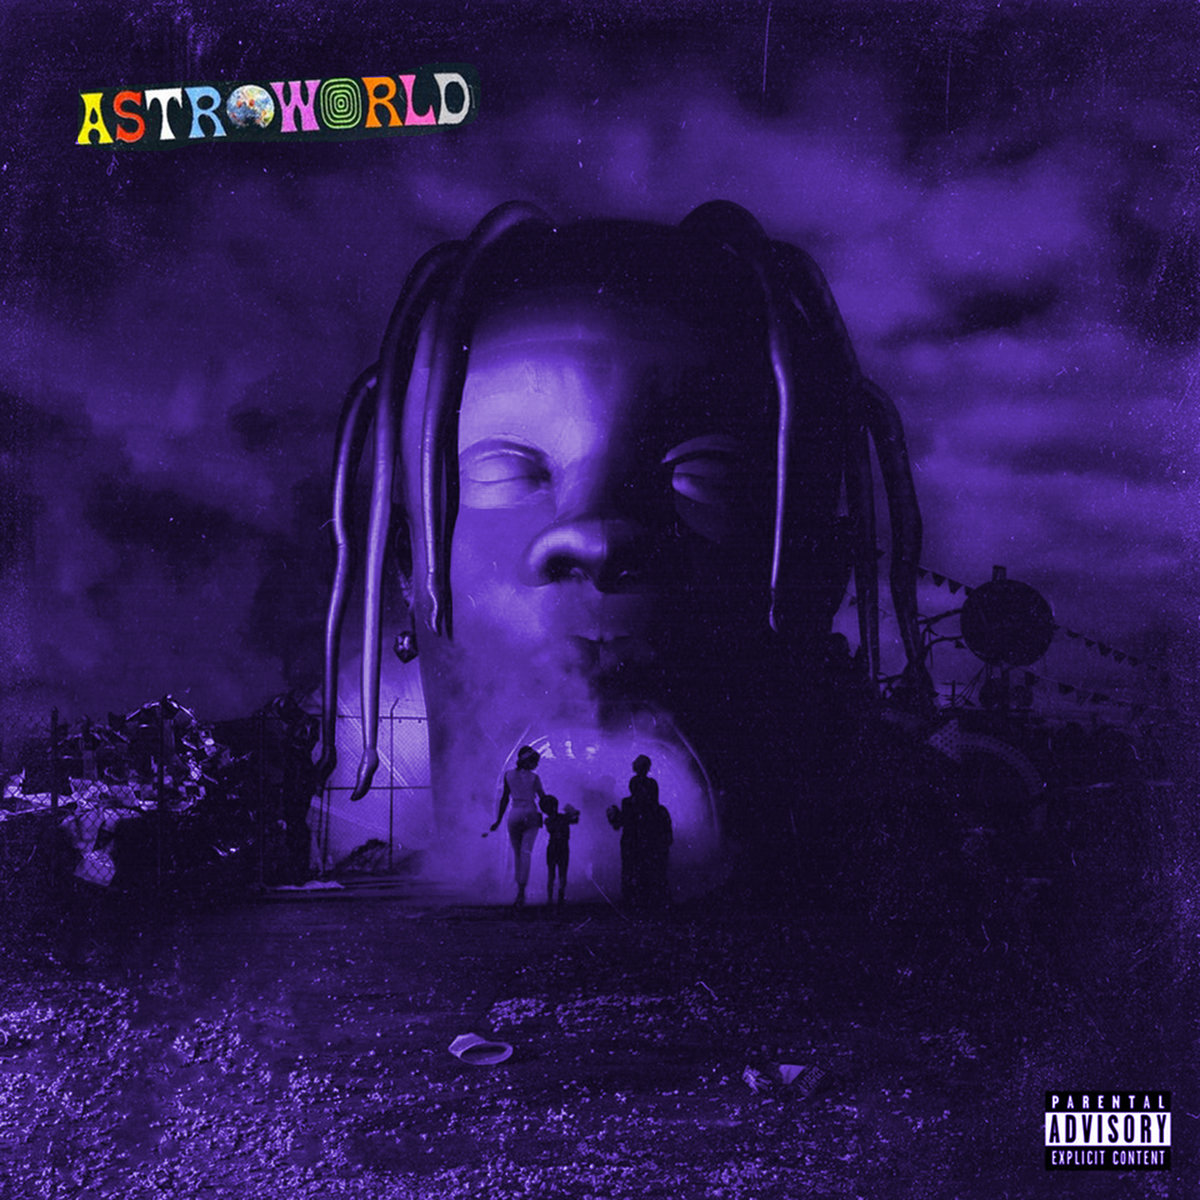 580f67e1f0e4 Astroworld | Chopped x Screwed | DJYung$avage